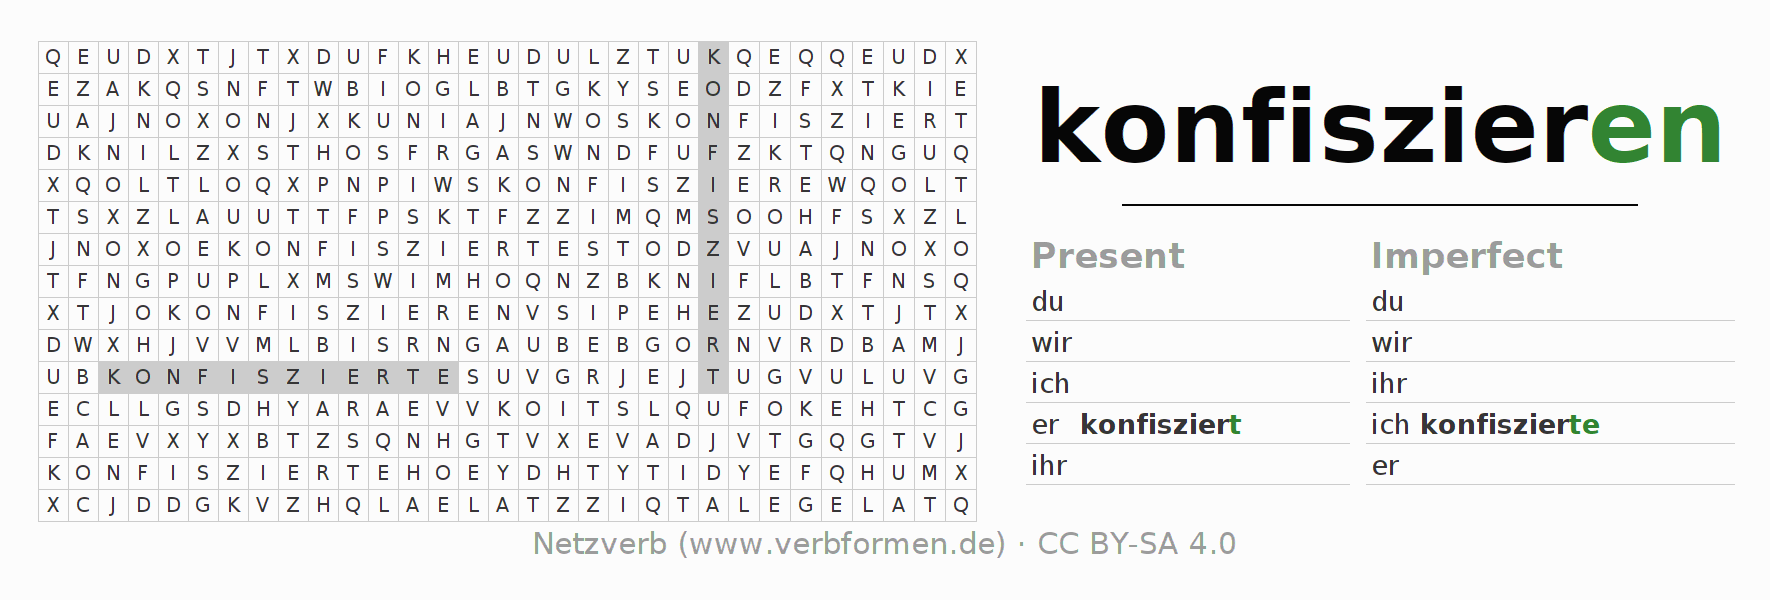 Word search puzzle for the conjugation of the verb konfiszieren